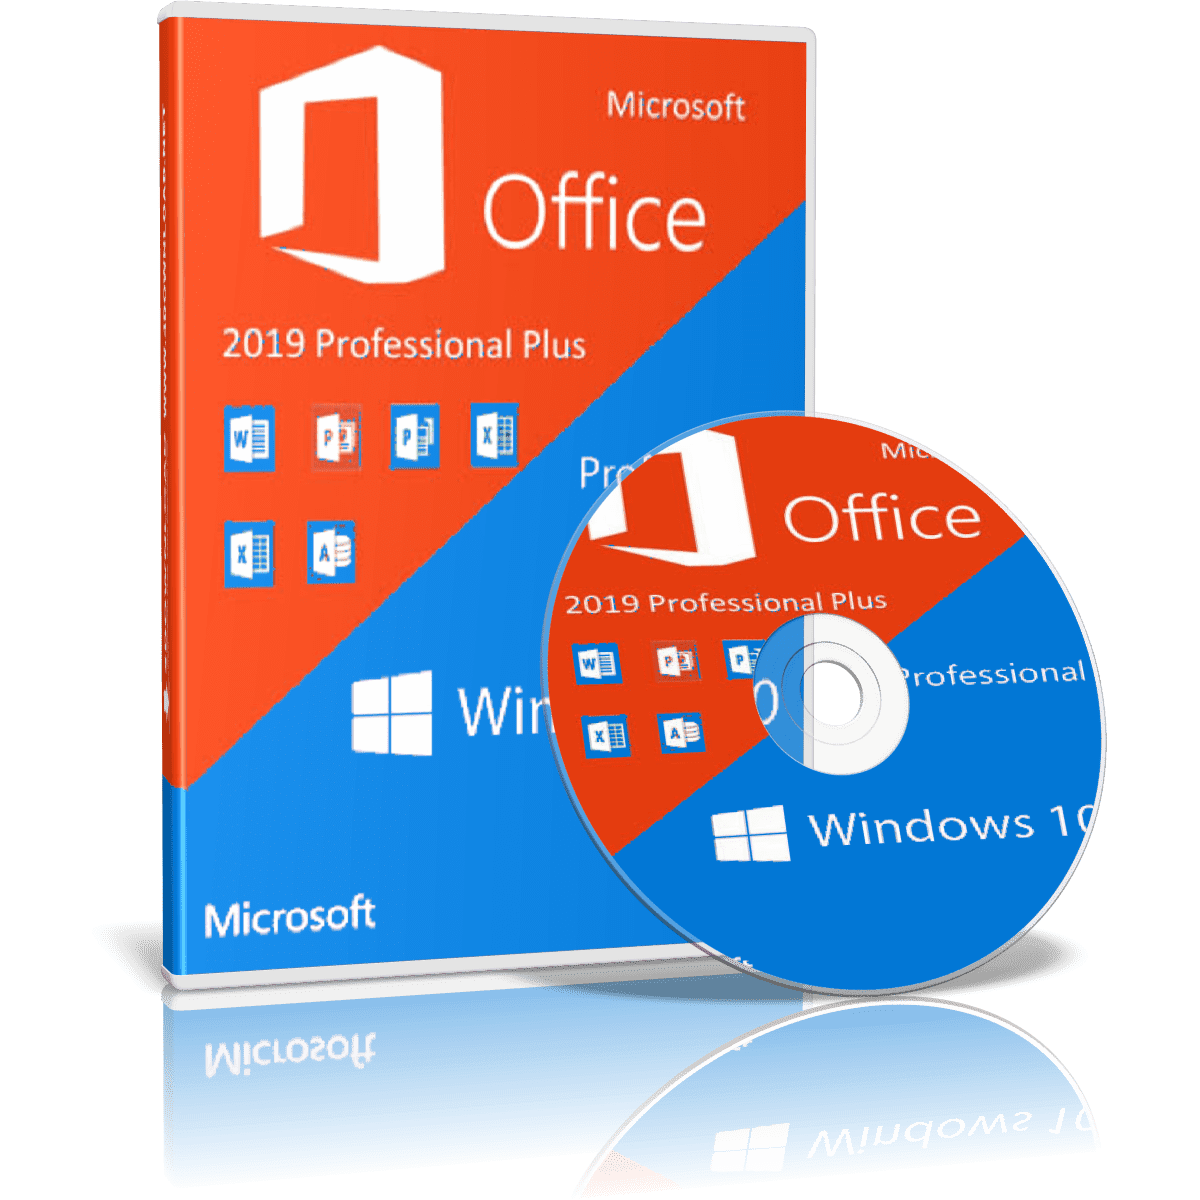 Windows 10 Pro 10.0.19042.746 With Office 2019 Pro Plus Jan 2021